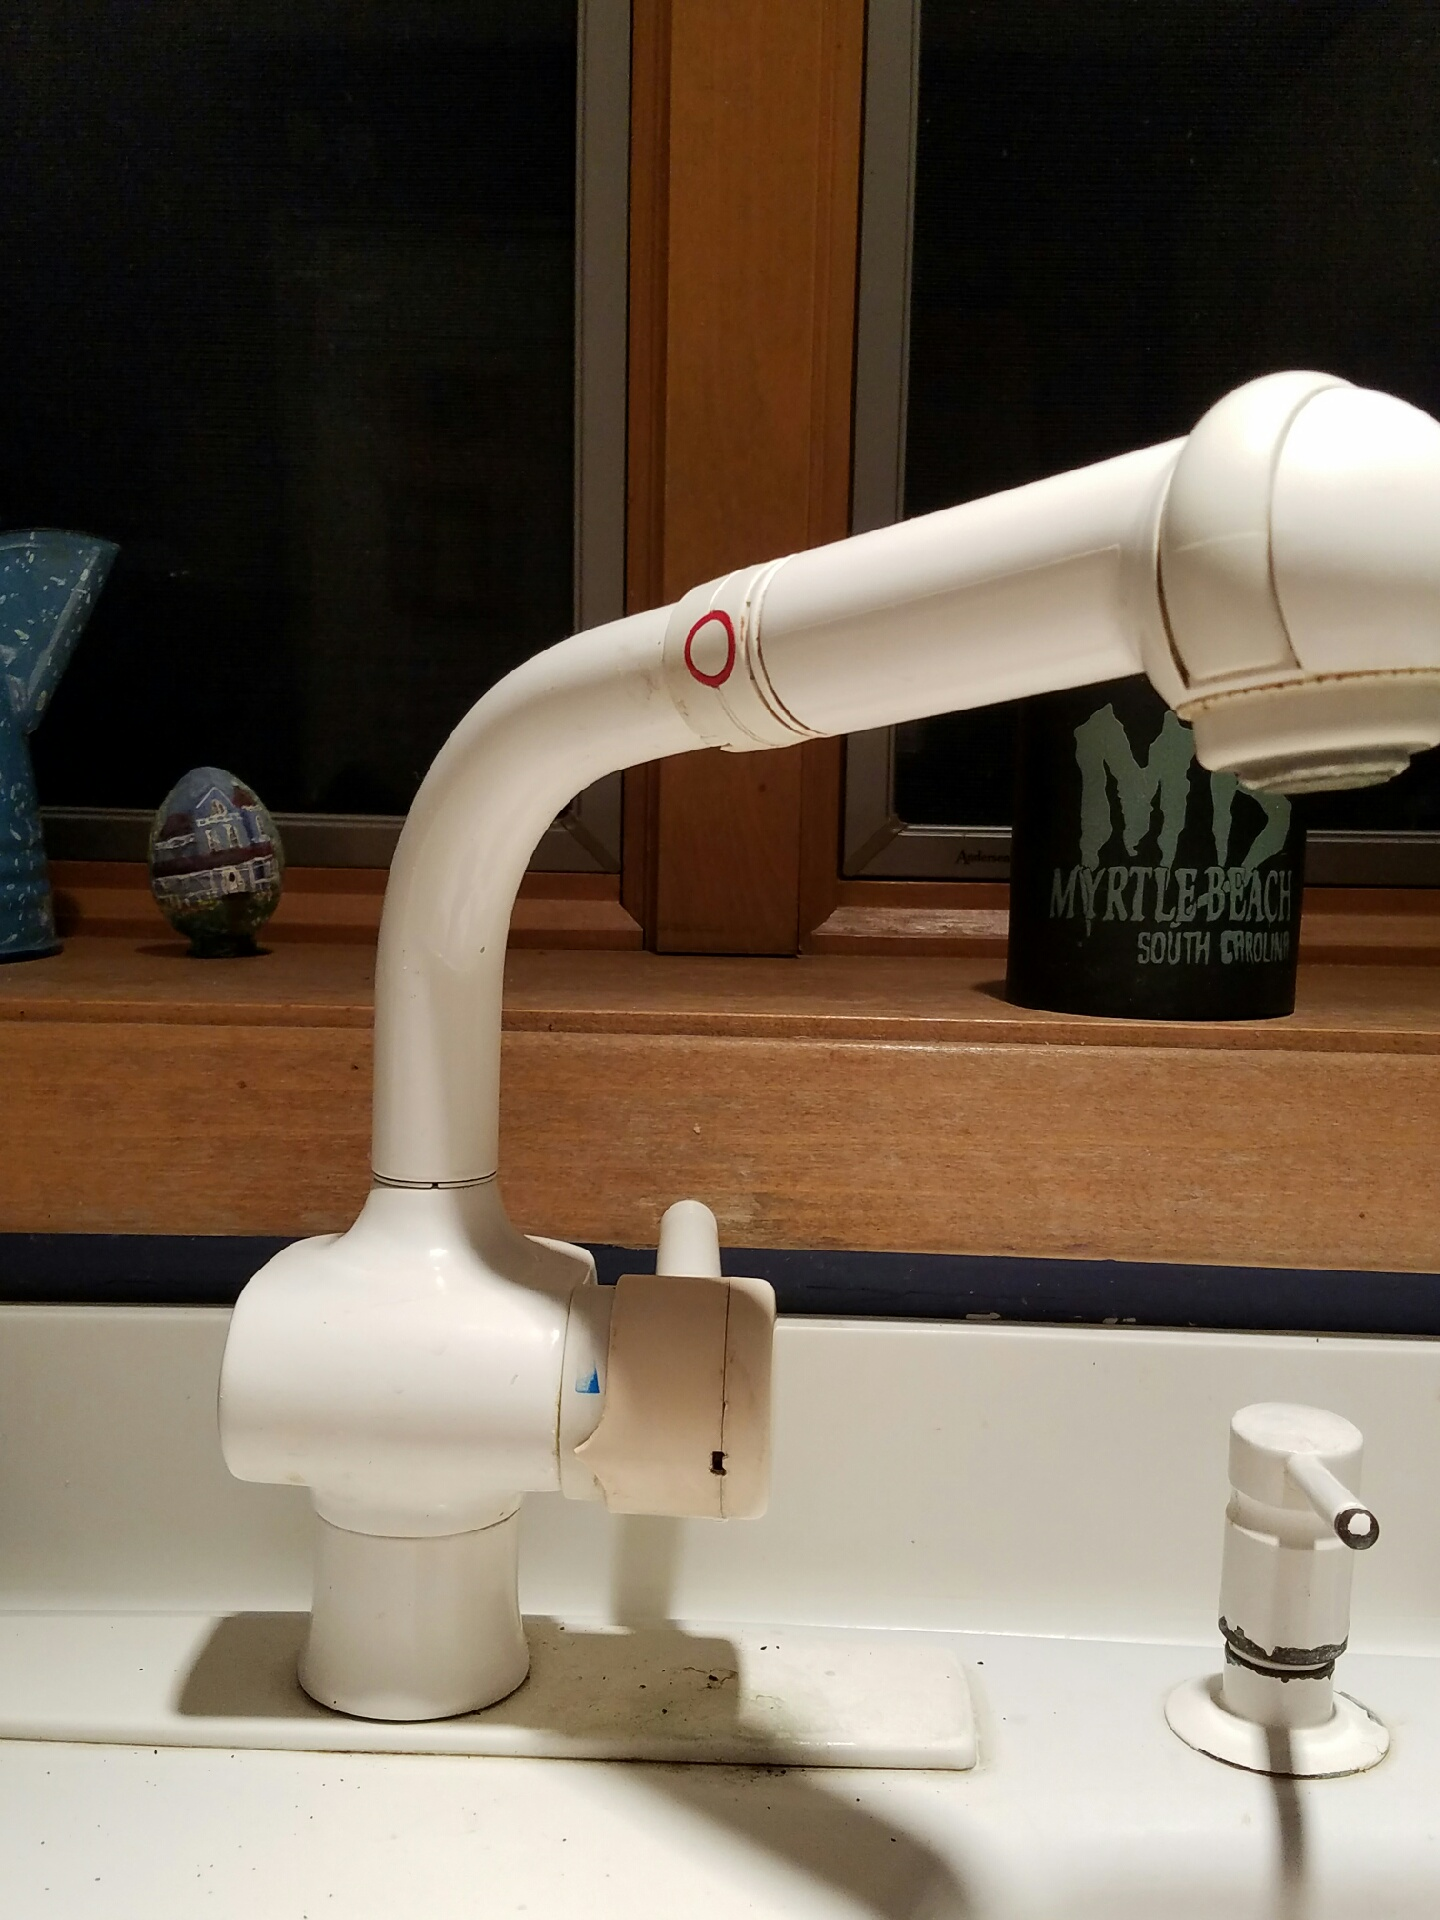 grohe kitchen faucet repair i have an old grohe ladylux kitchen faucet 33 790 000 i have the repair parts purchased them 9702